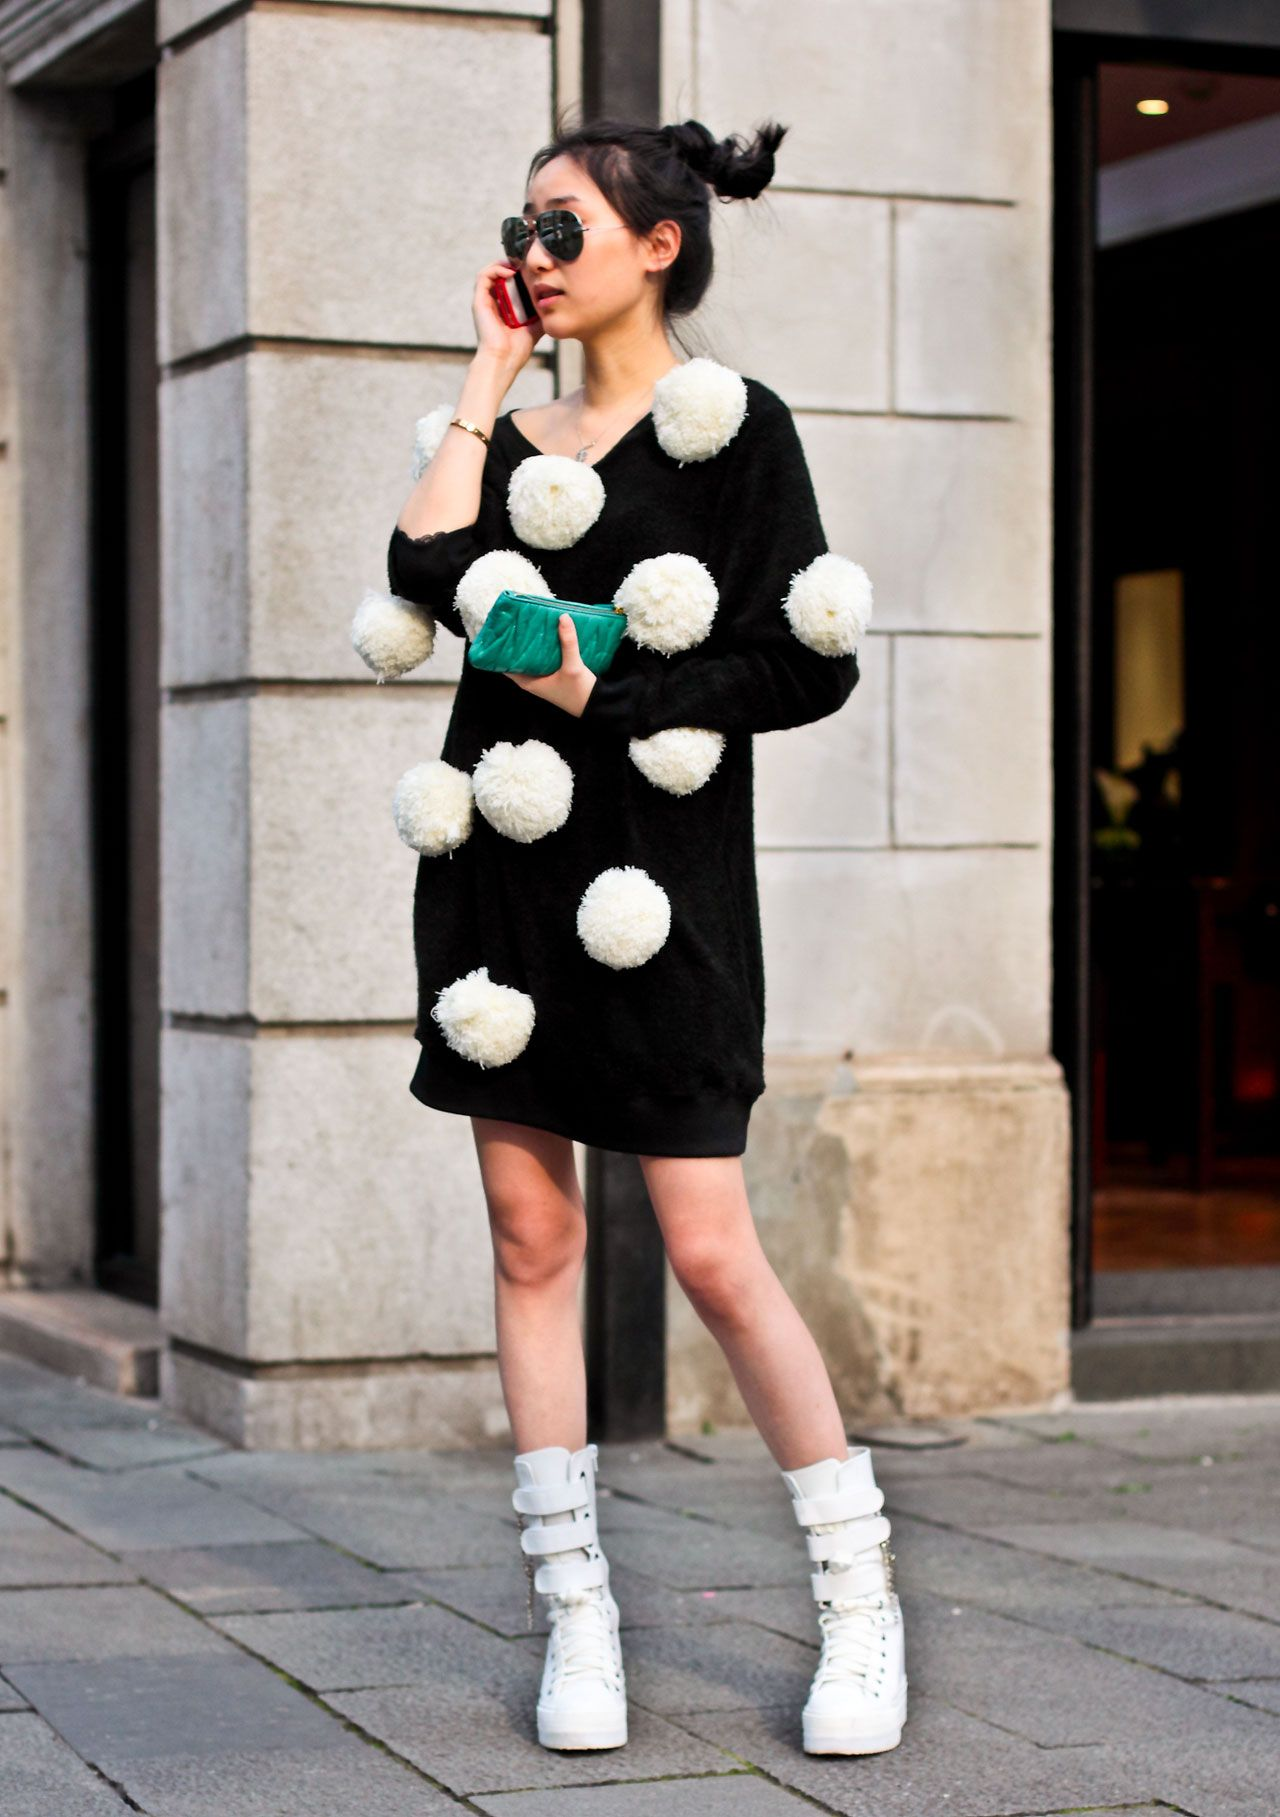 A Fun Street Style Look A Black Knit Covered In Cute